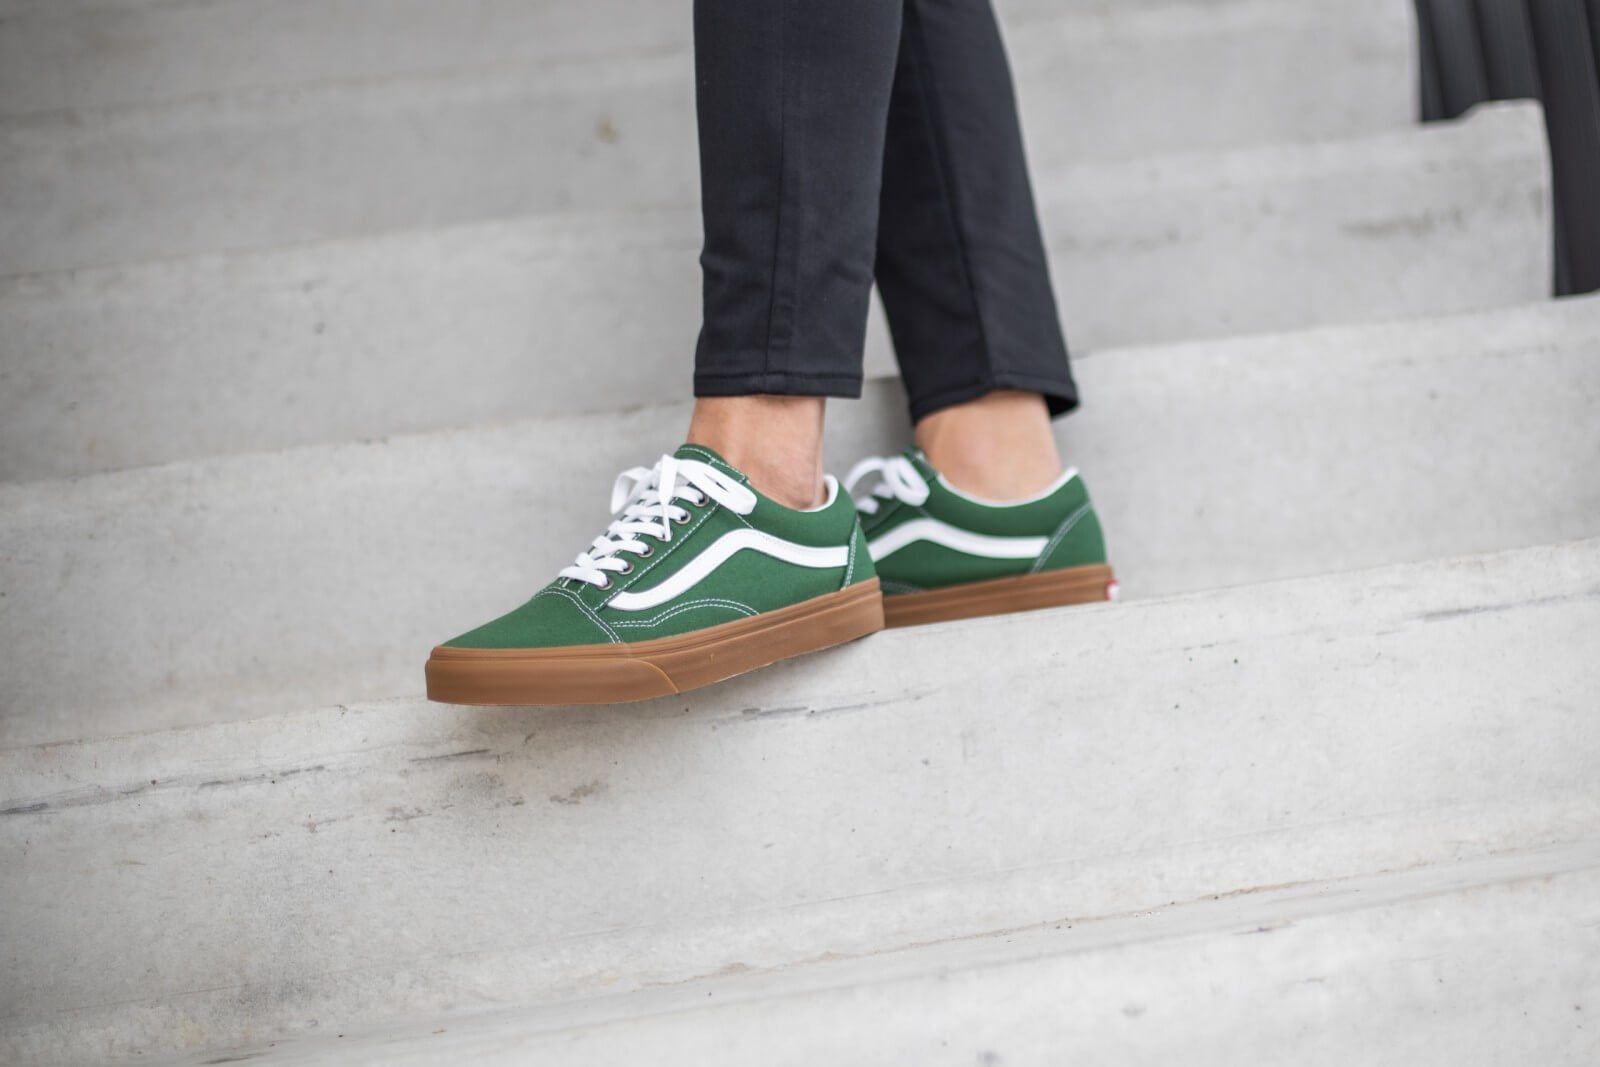 Vans Old Skool GumGreener PasturesTrue White VN0A4U3BWYY1